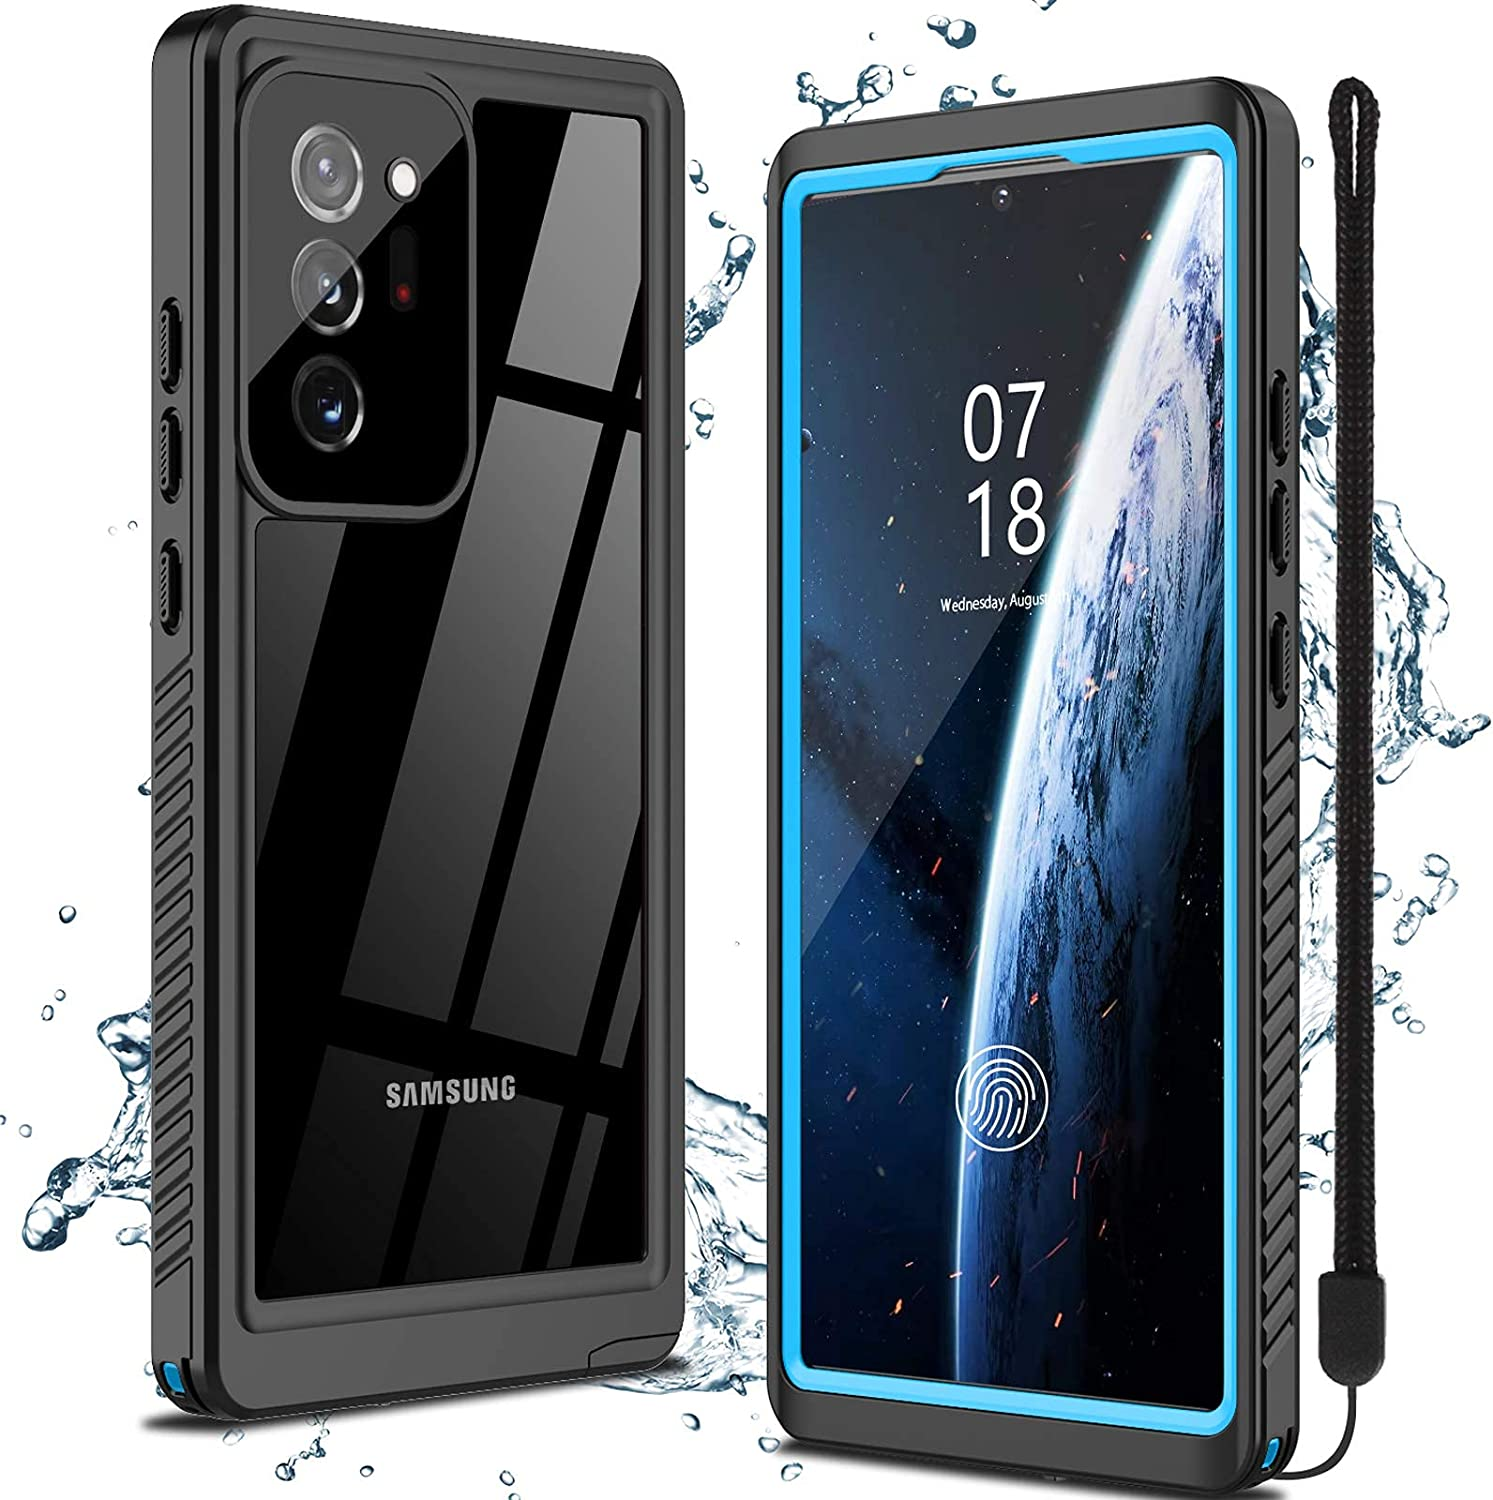 Nineasy for Samsung Galaxy Note 20 Ultra Case, Note 20 Ultra Waterproof Case,360° Full Body Protection with Built in Screen Protector Underwater Cover IP68 Shockproof Case for Note 20 Ultra 5G 6.9